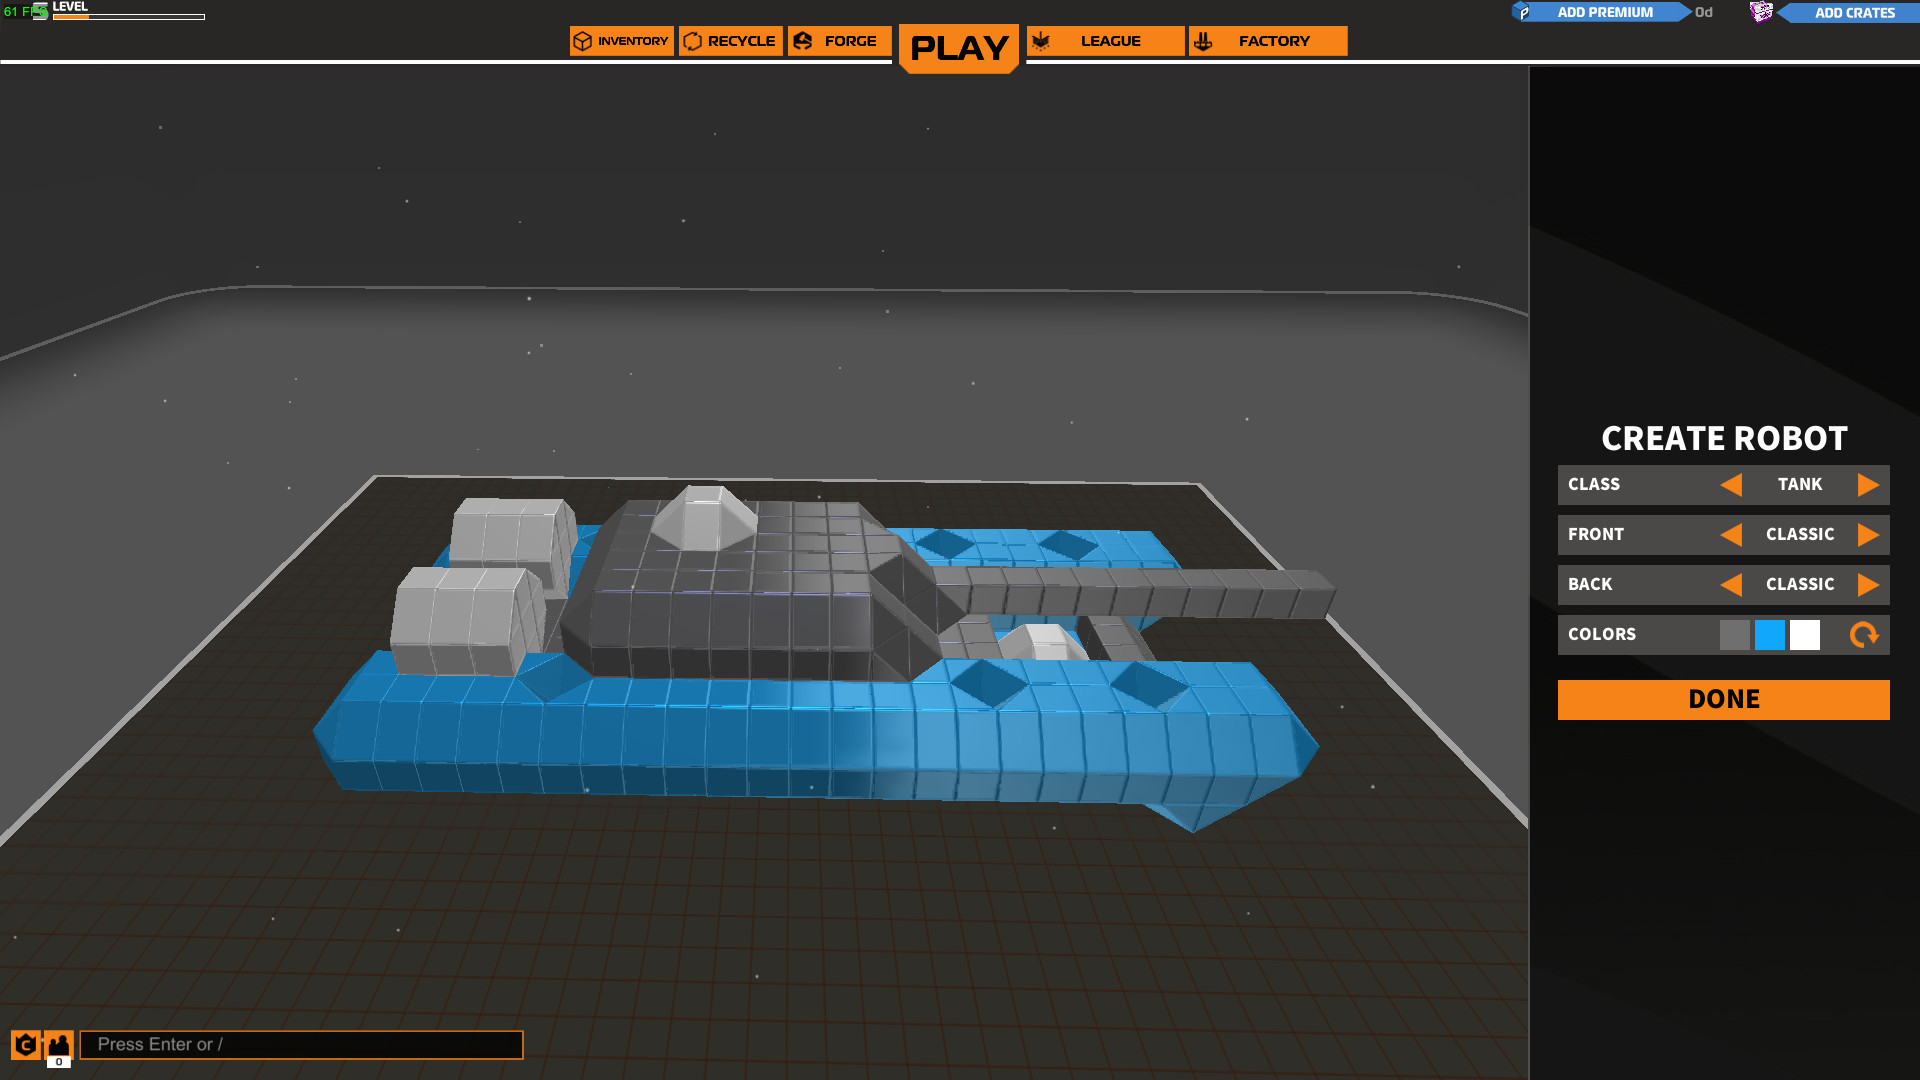 Fun free to play vehicle combat game 'Robocraft' updated